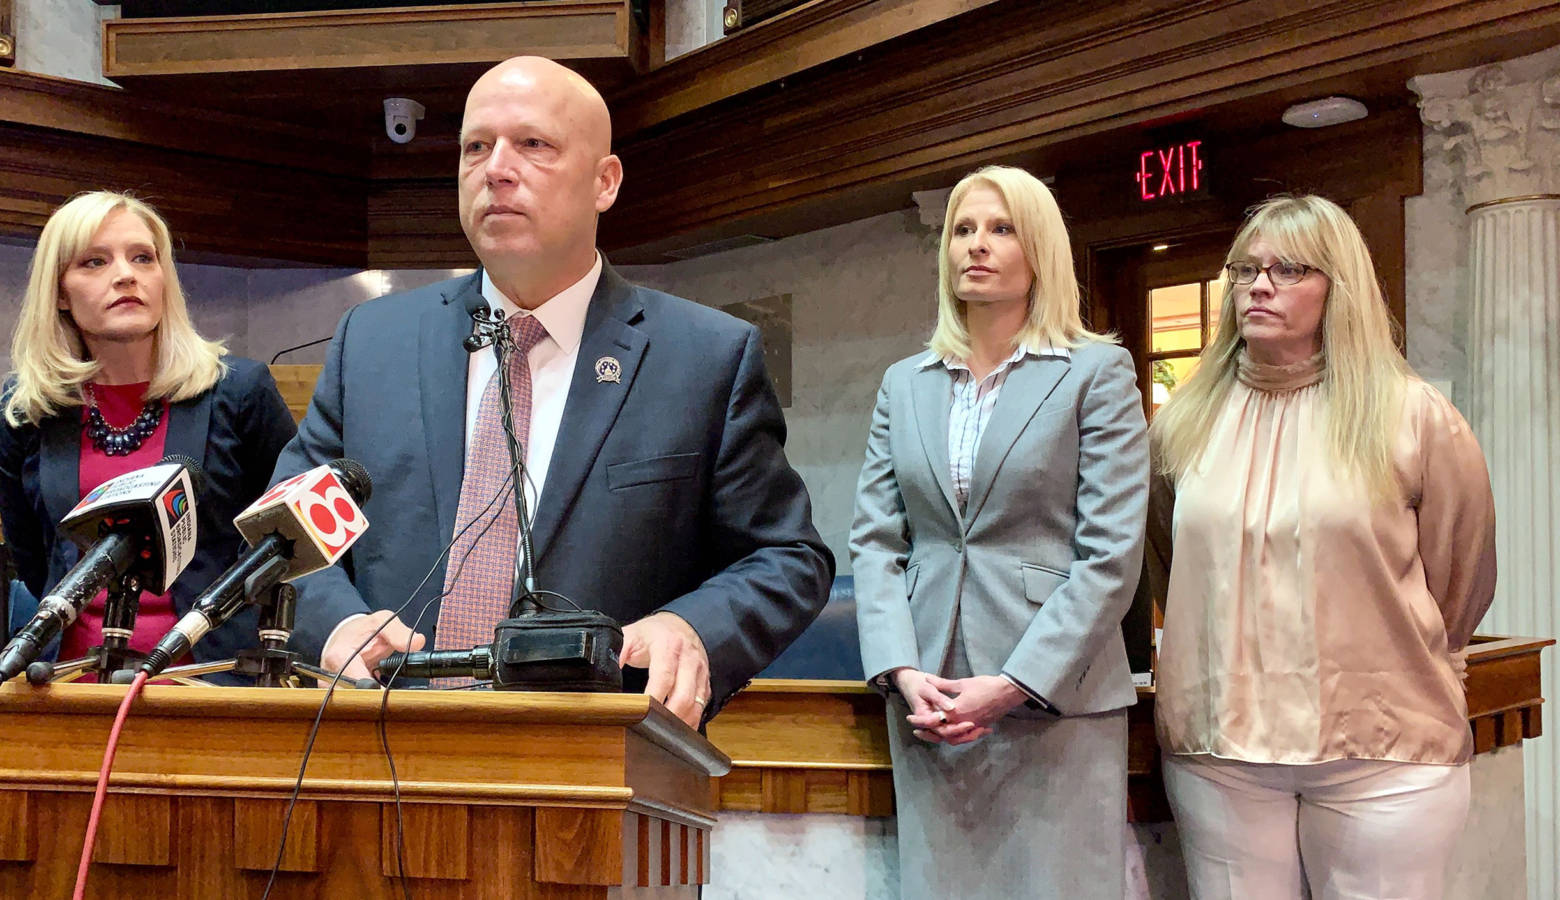 Sen. Mike Crider (R-Greenfield) talks about his legislation with Sen. Erin Houchin (R-Salem), left, and sexual assault prevention advocates supporting him. (Brandon Smith/IPB News)